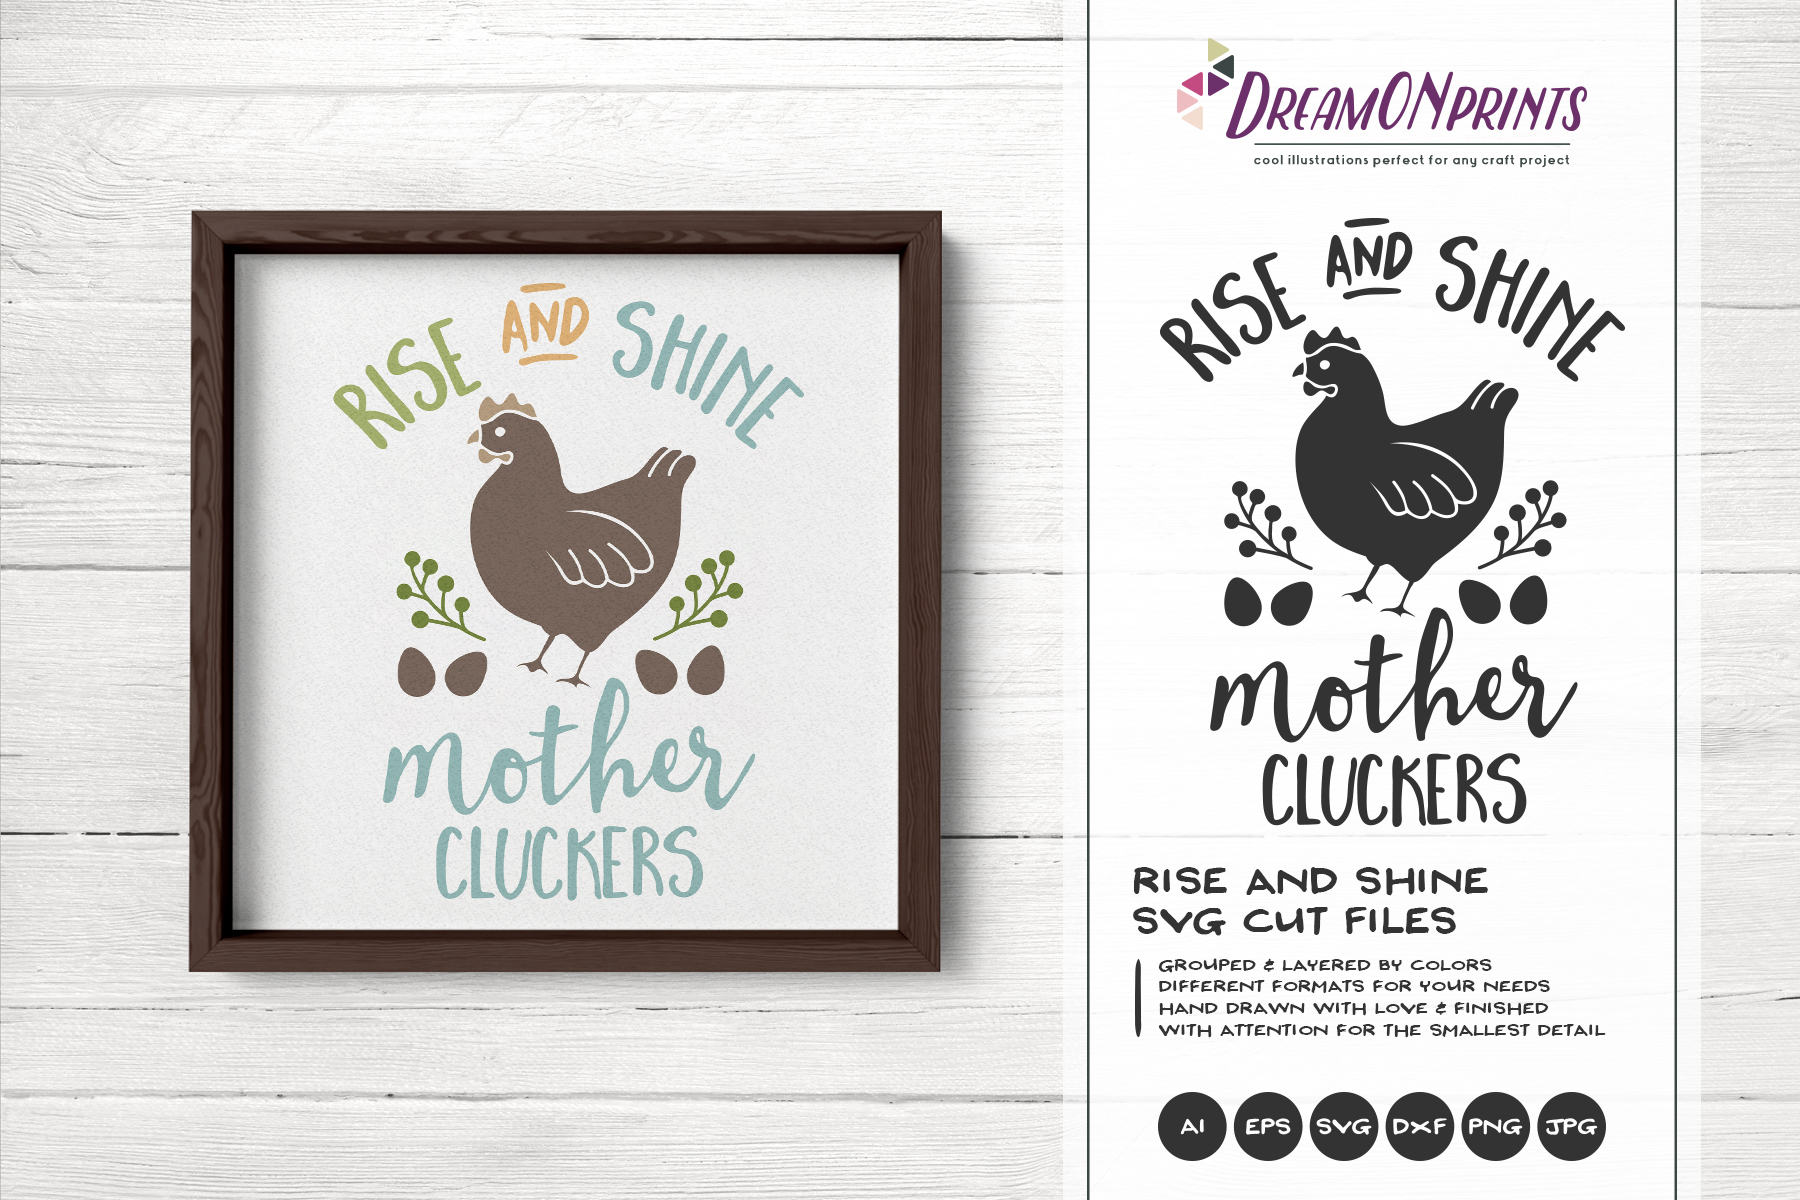 Rise and Shine Mother Cluckers SVG example image 1